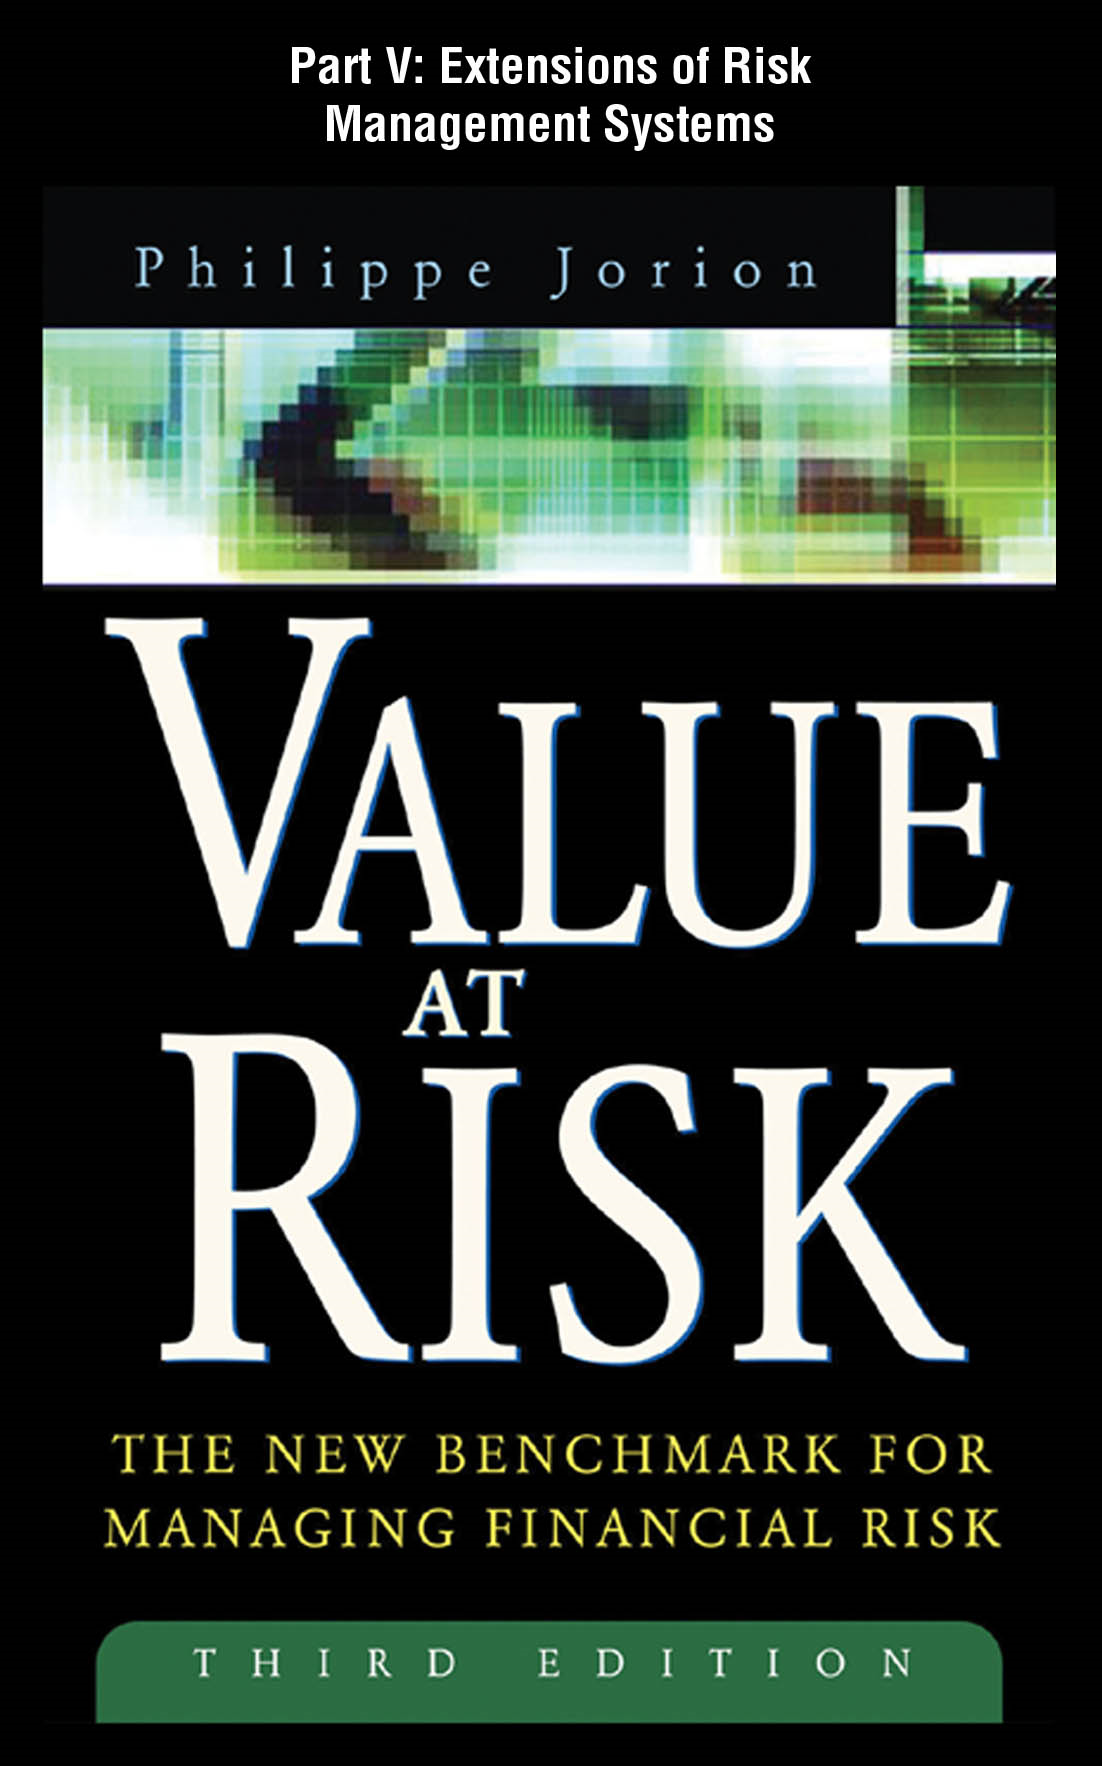 Value at Risk, 3rd Ed., Part V - Extensions of Risk Management Systems